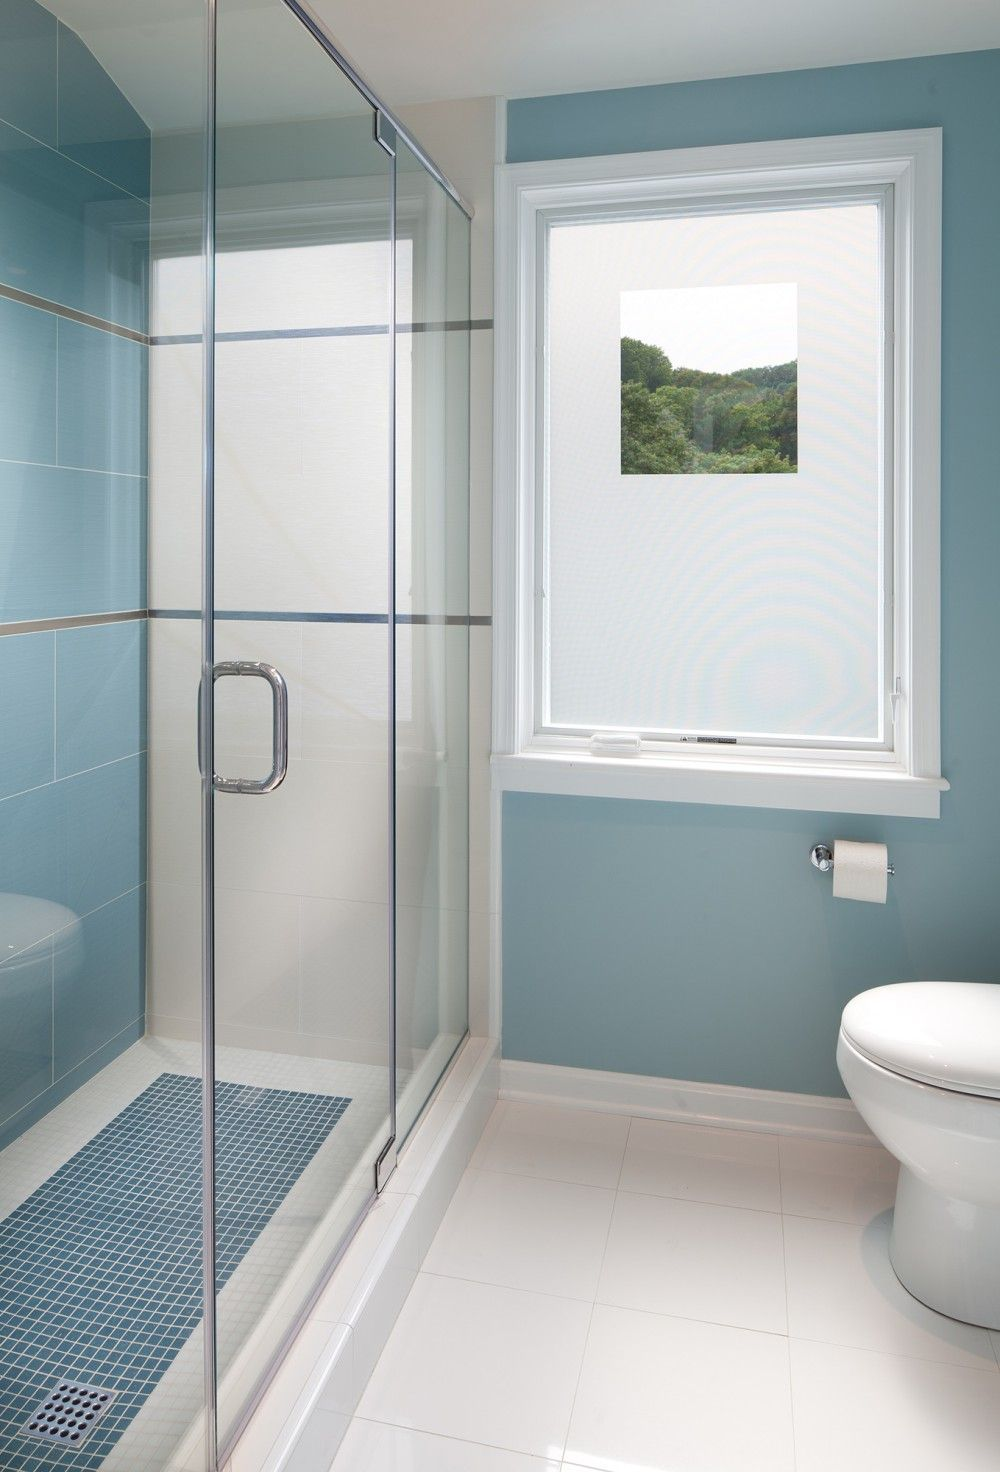 Clean blue bathroom design with glass shower doors | Anthony Wilder ...